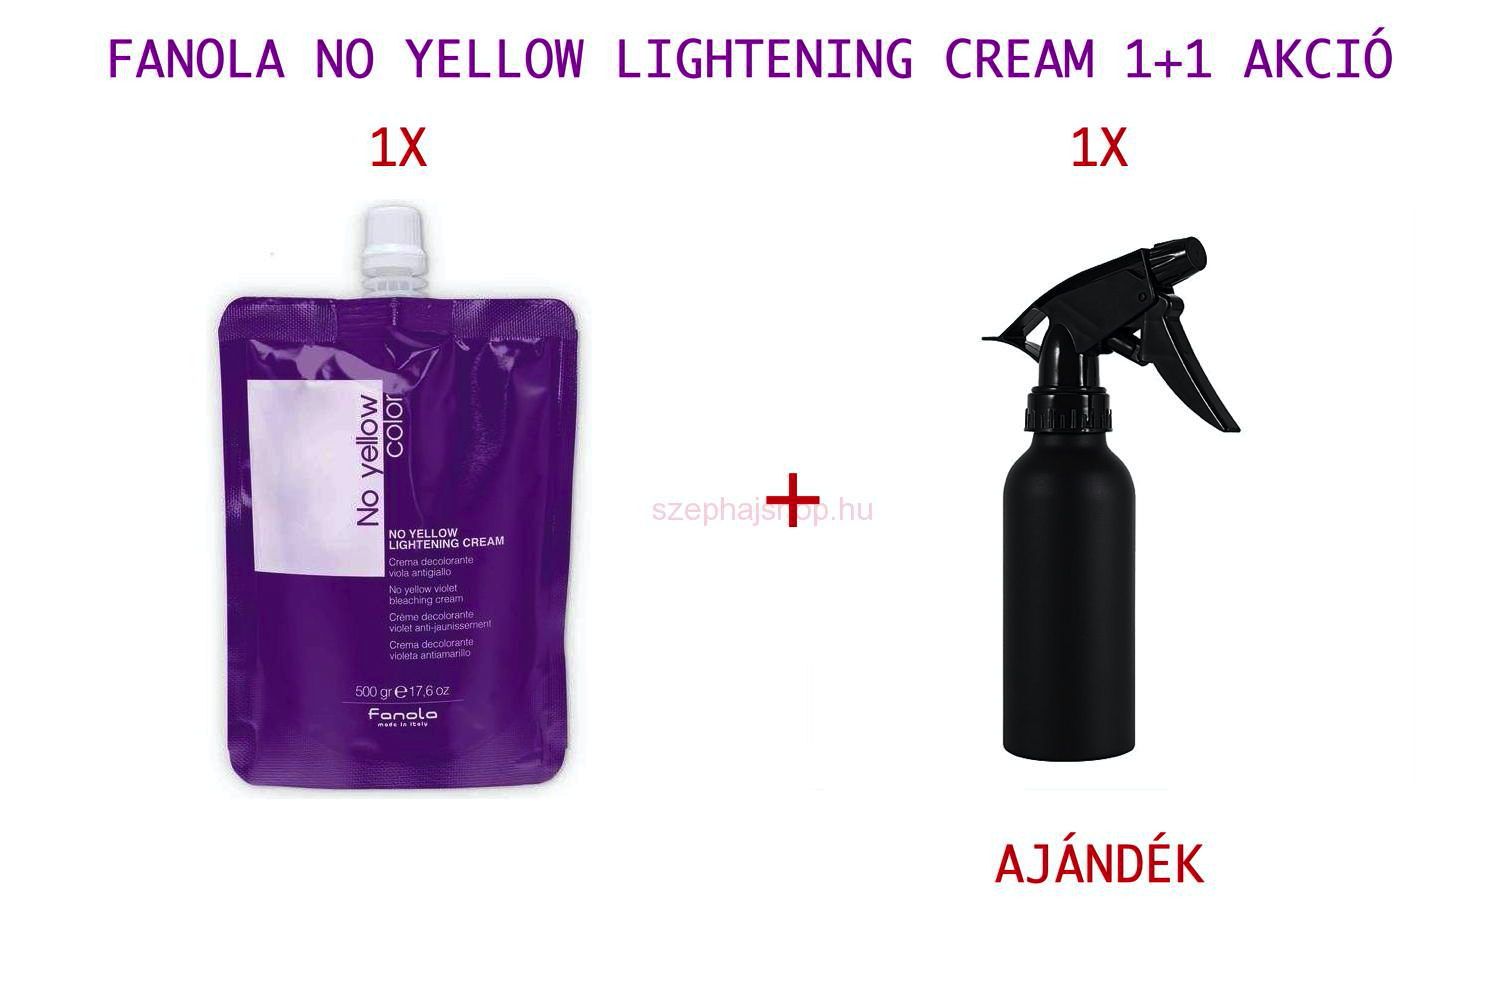 FANOLA No Yellow Lightening Cream 500 gr 1+1 db FANOLA Logós vizező spray AKCIÓ